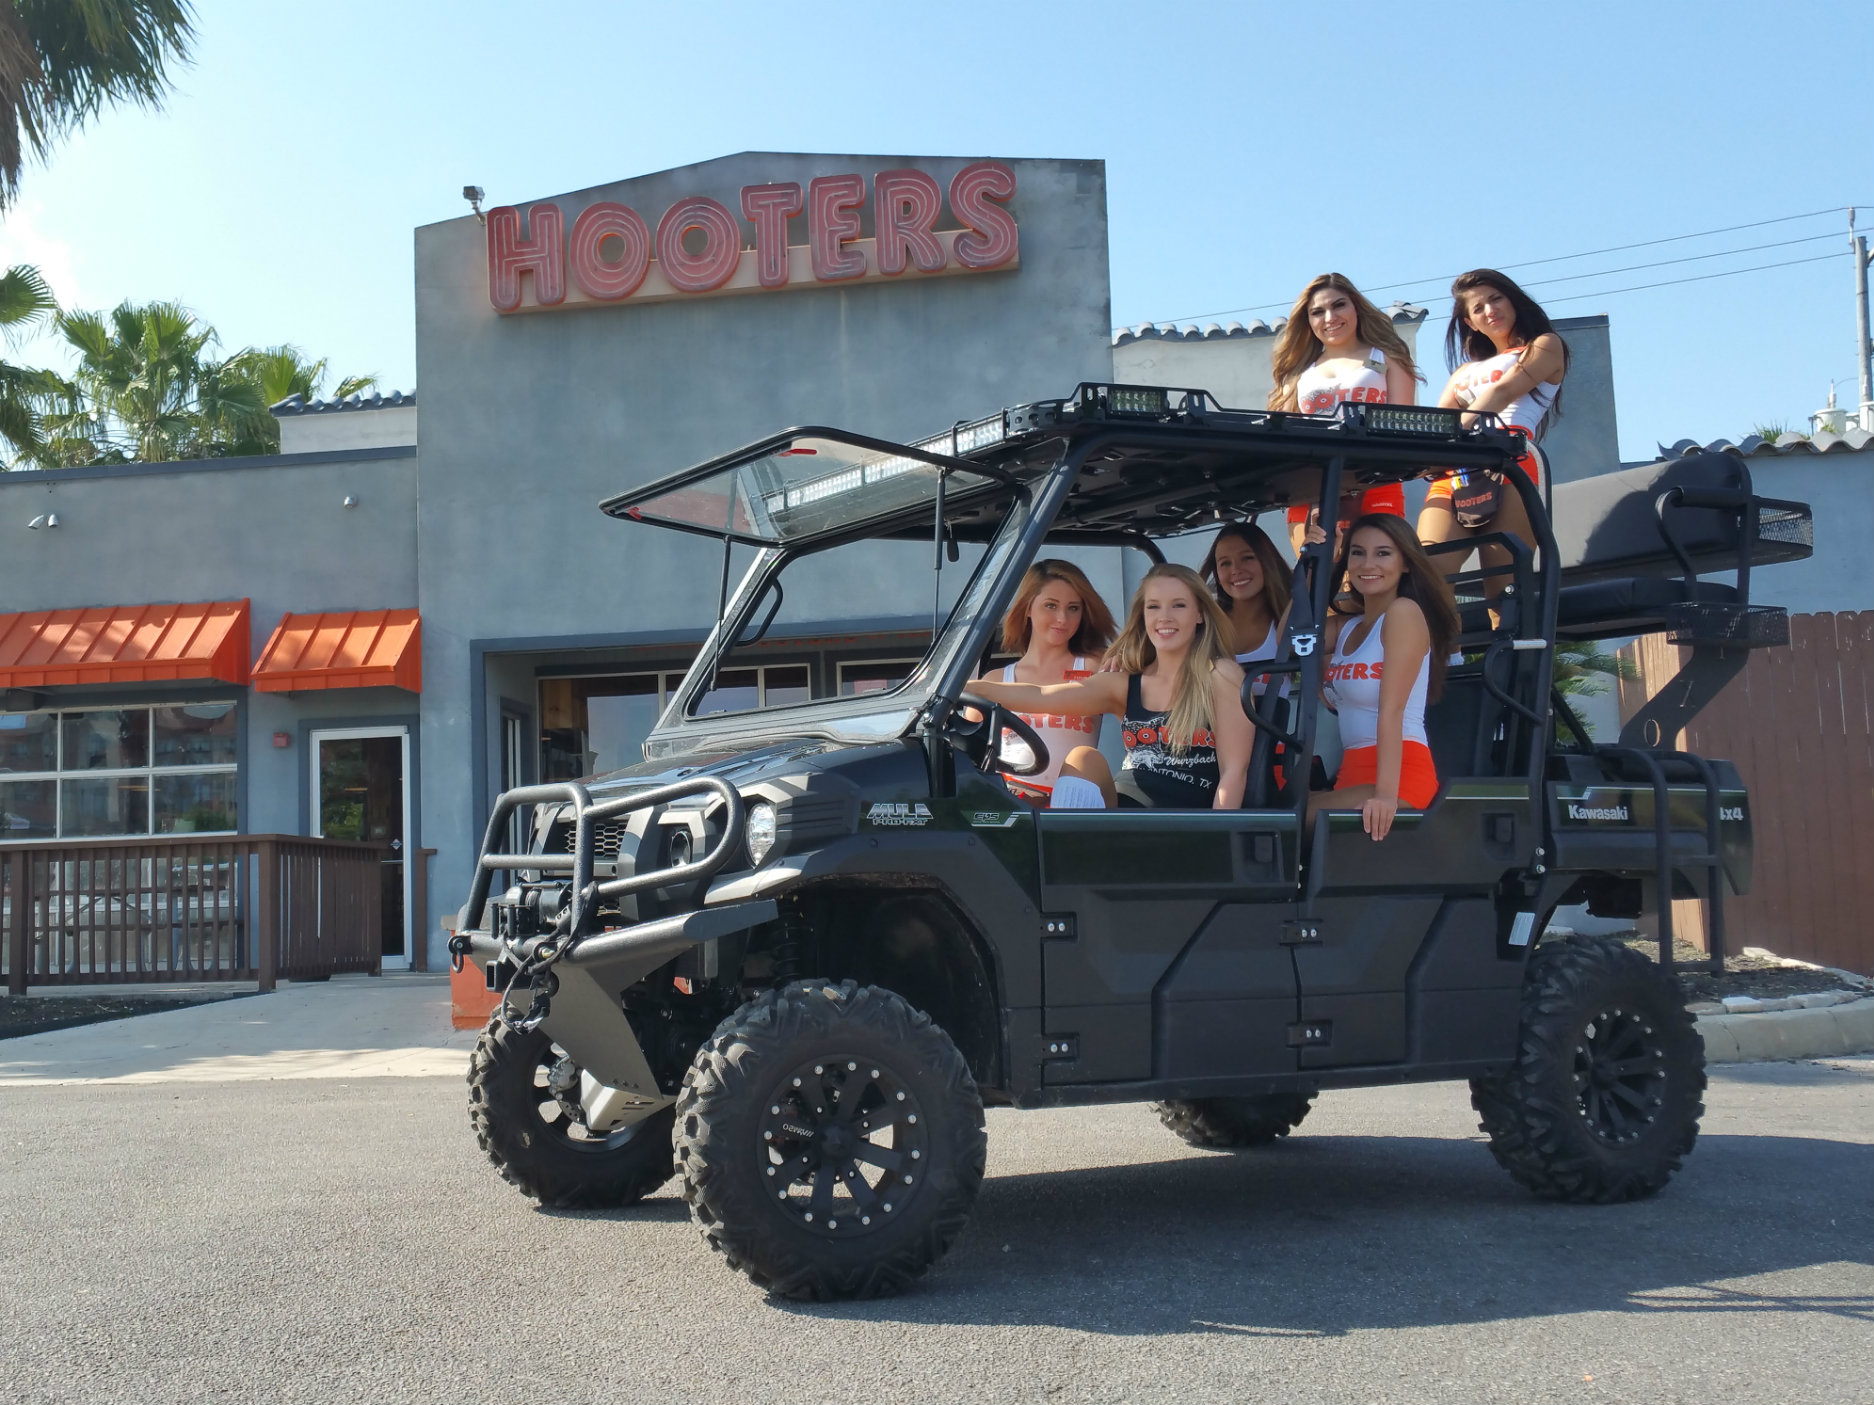 hooters-girls-selma-texas-on-txo-customs-kawasaku-mule-pro-fxt-high-seat.jpg